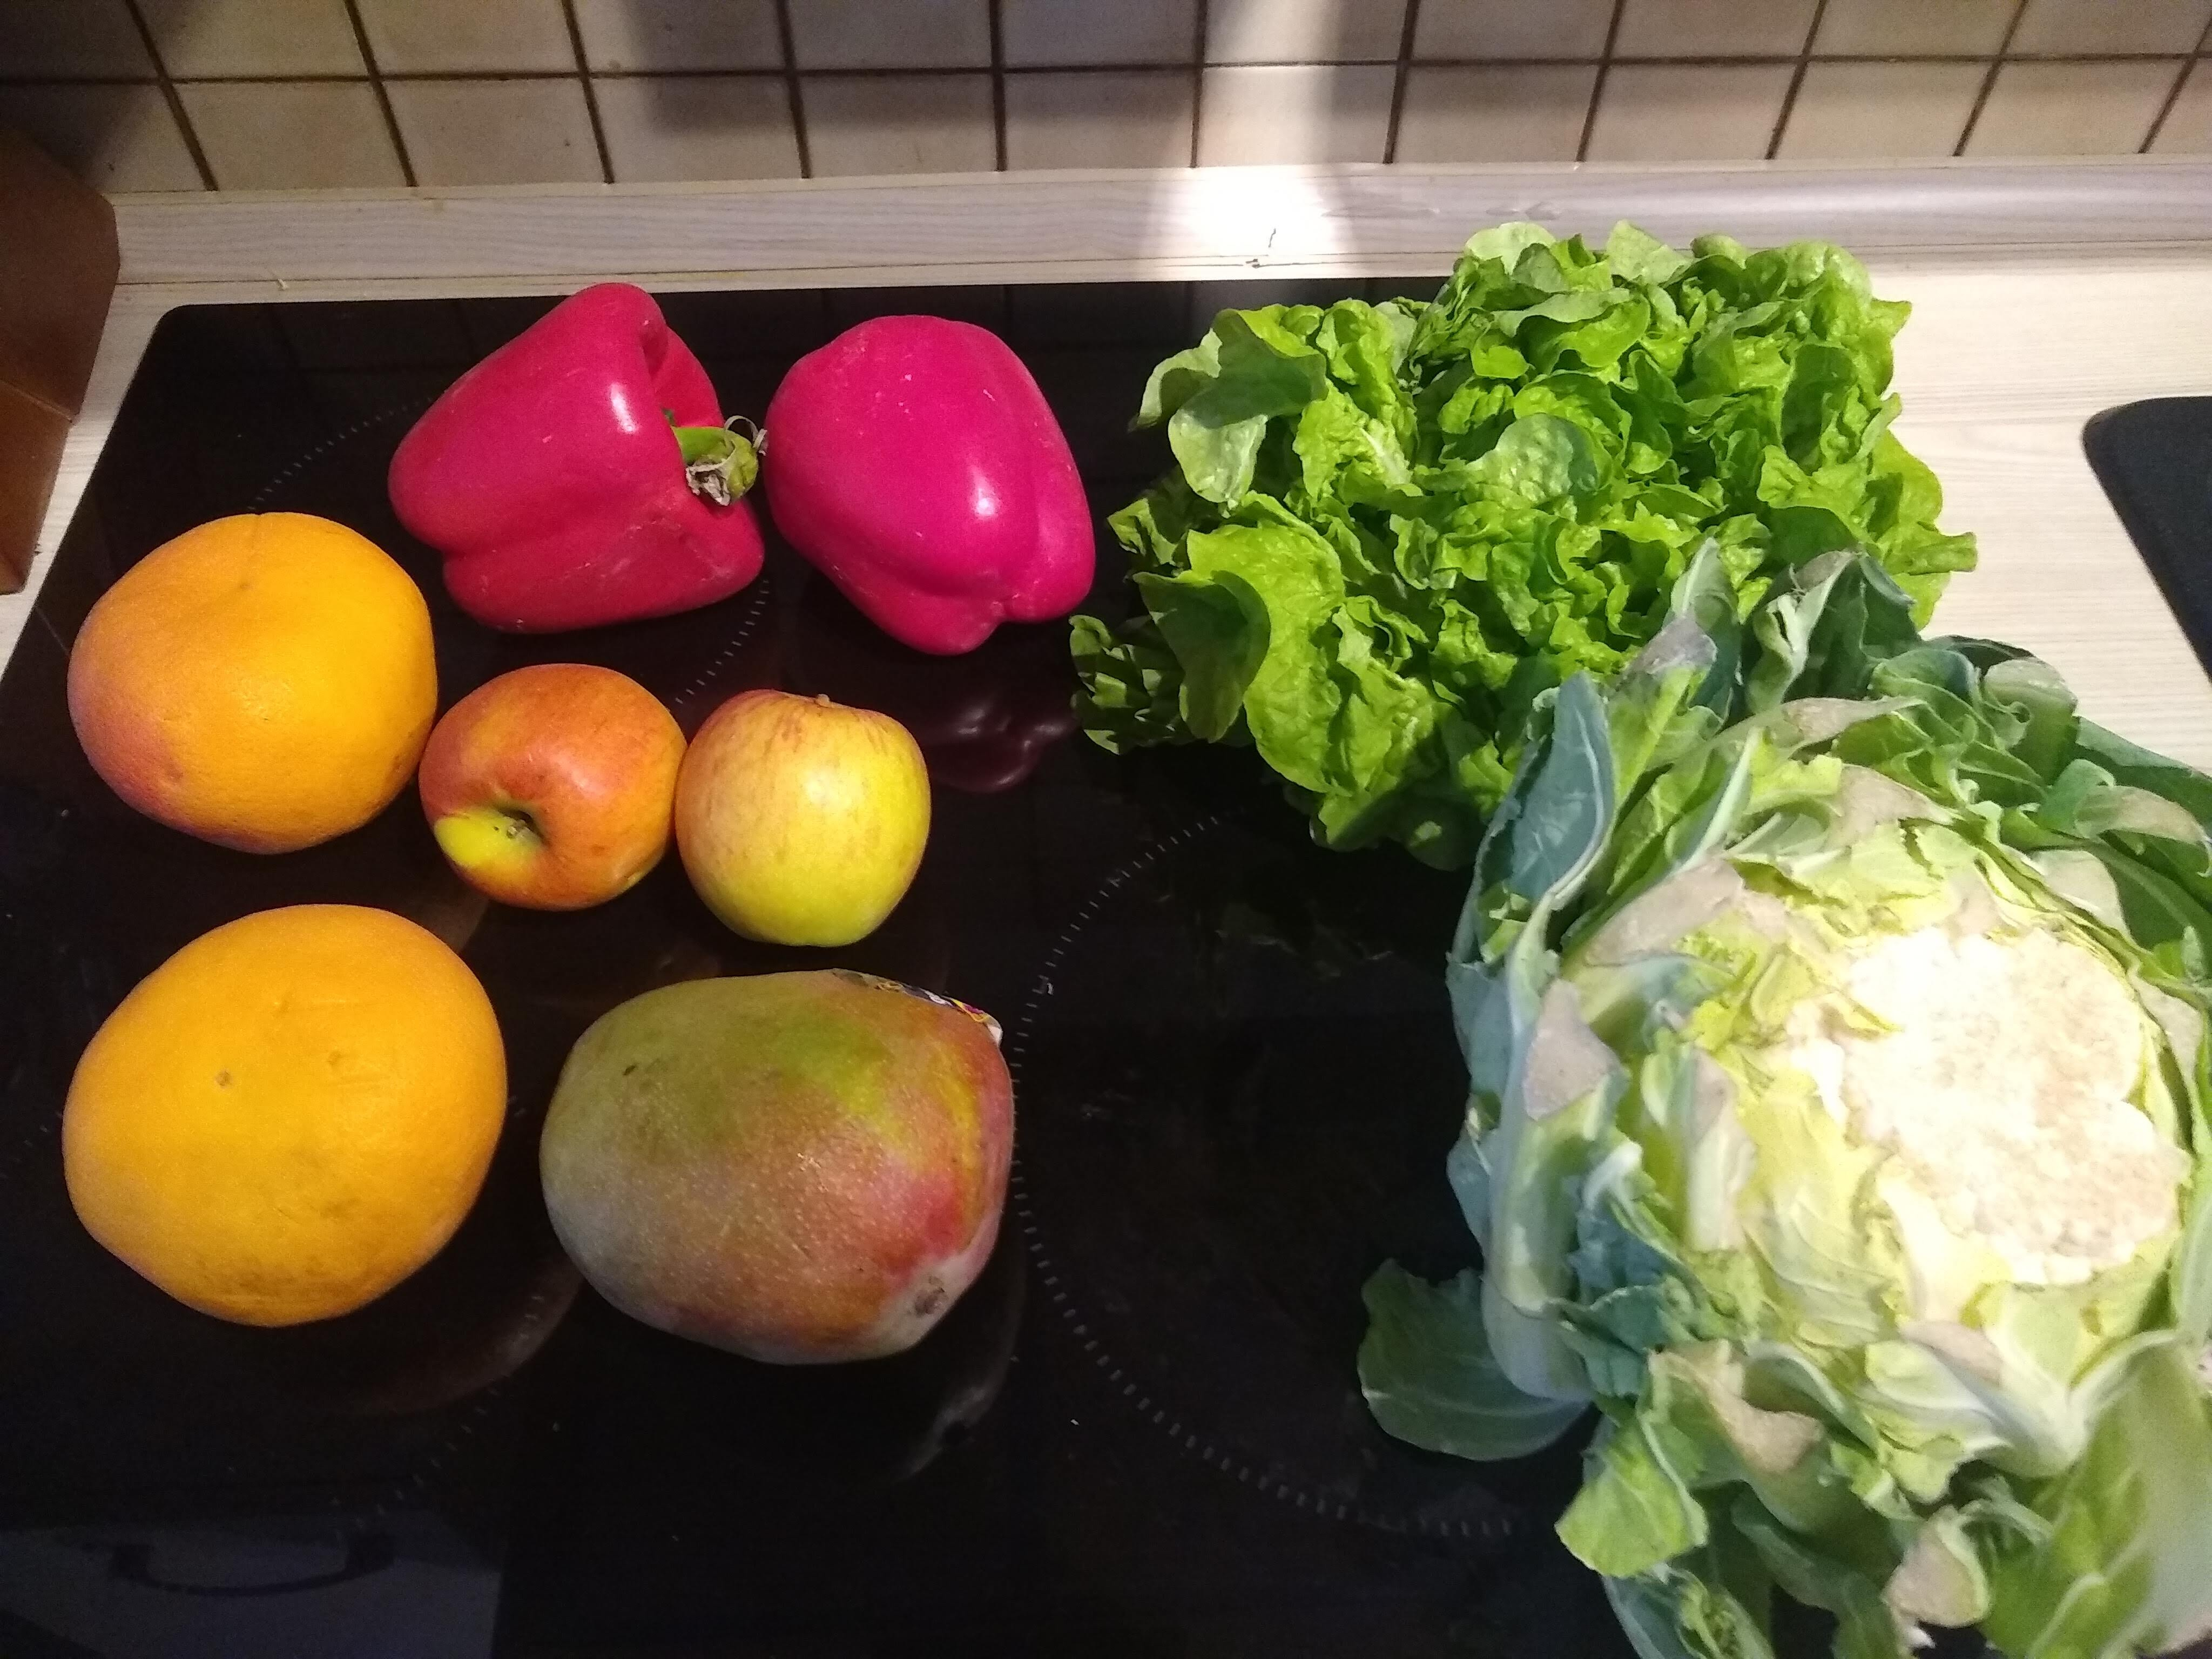 Two oranges, two apples, two red peppers, a lettuce, and a head of a cauliflower laid out on a cooker top.